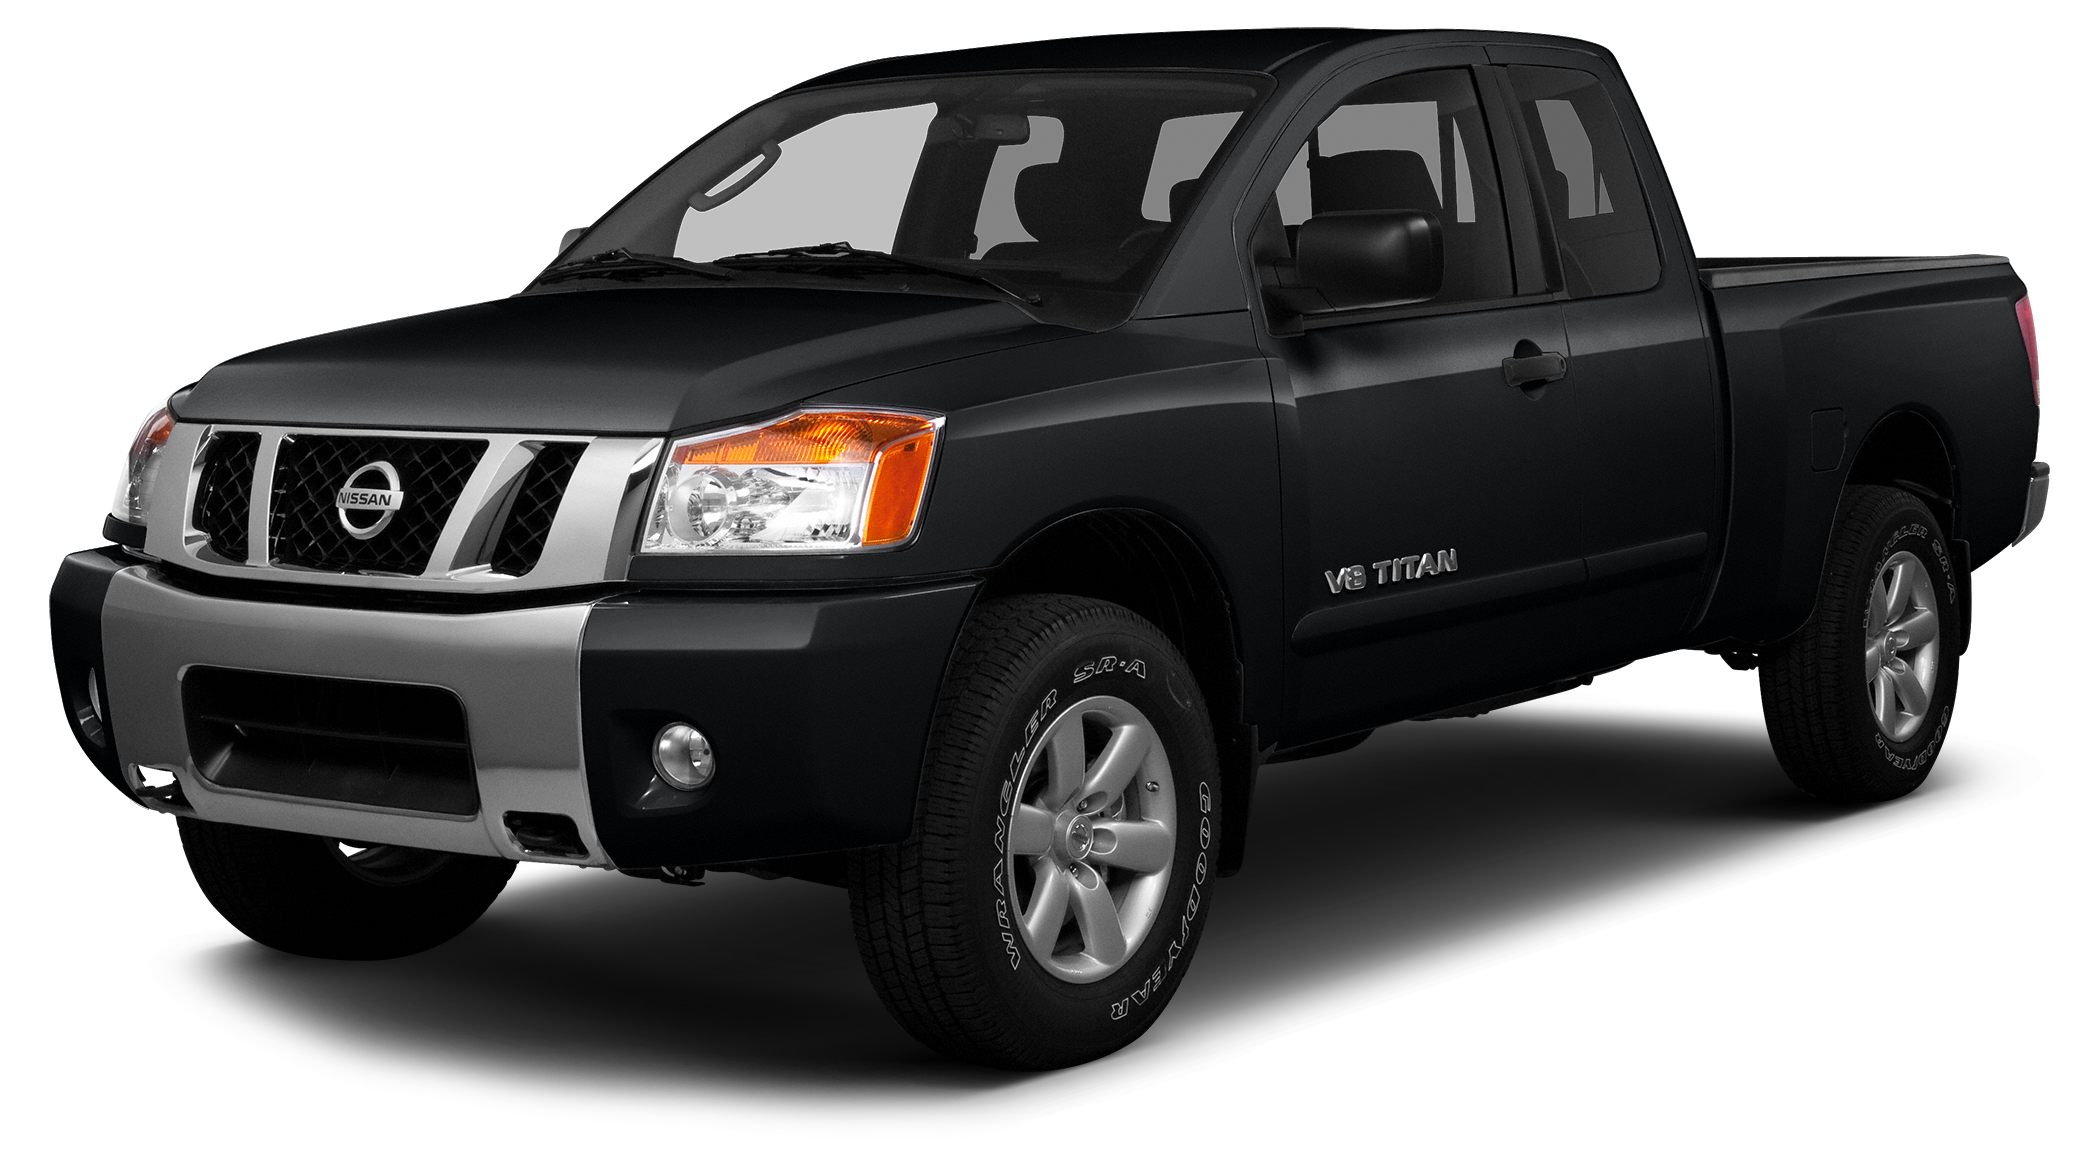 2015 Nissan Titan SV 2015 Nissan Titan Priced below MSRP Bargain Price Biggest Discounts Any